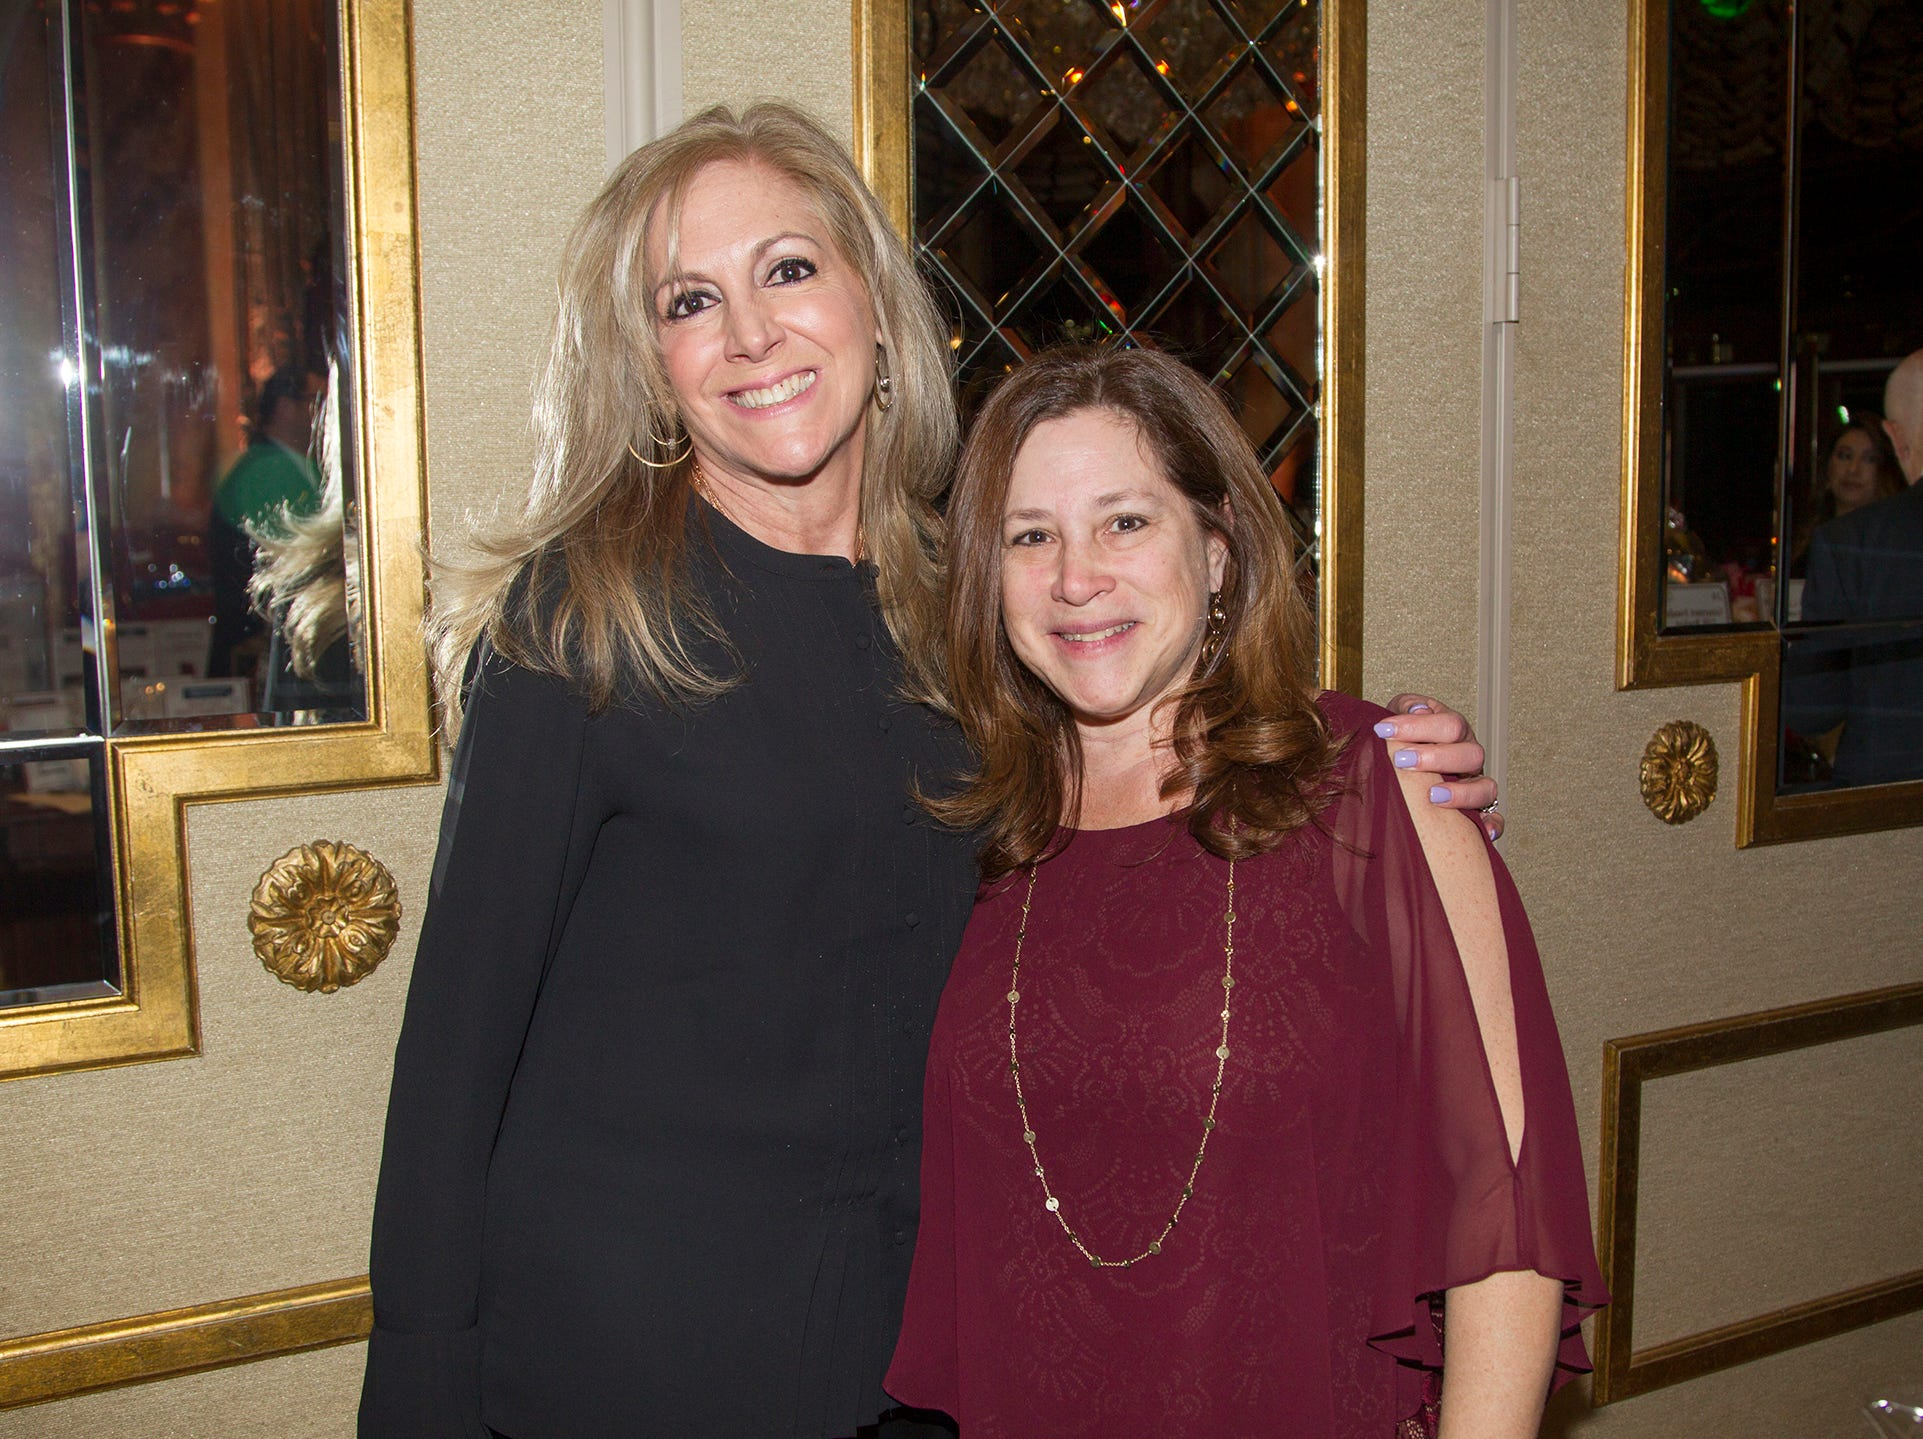 Connie Carroll, Amy Appell. Institute for Educational Achievement (IEA) held its annual Dinner Dance at Seasons in Washington Township. 02/02/2019